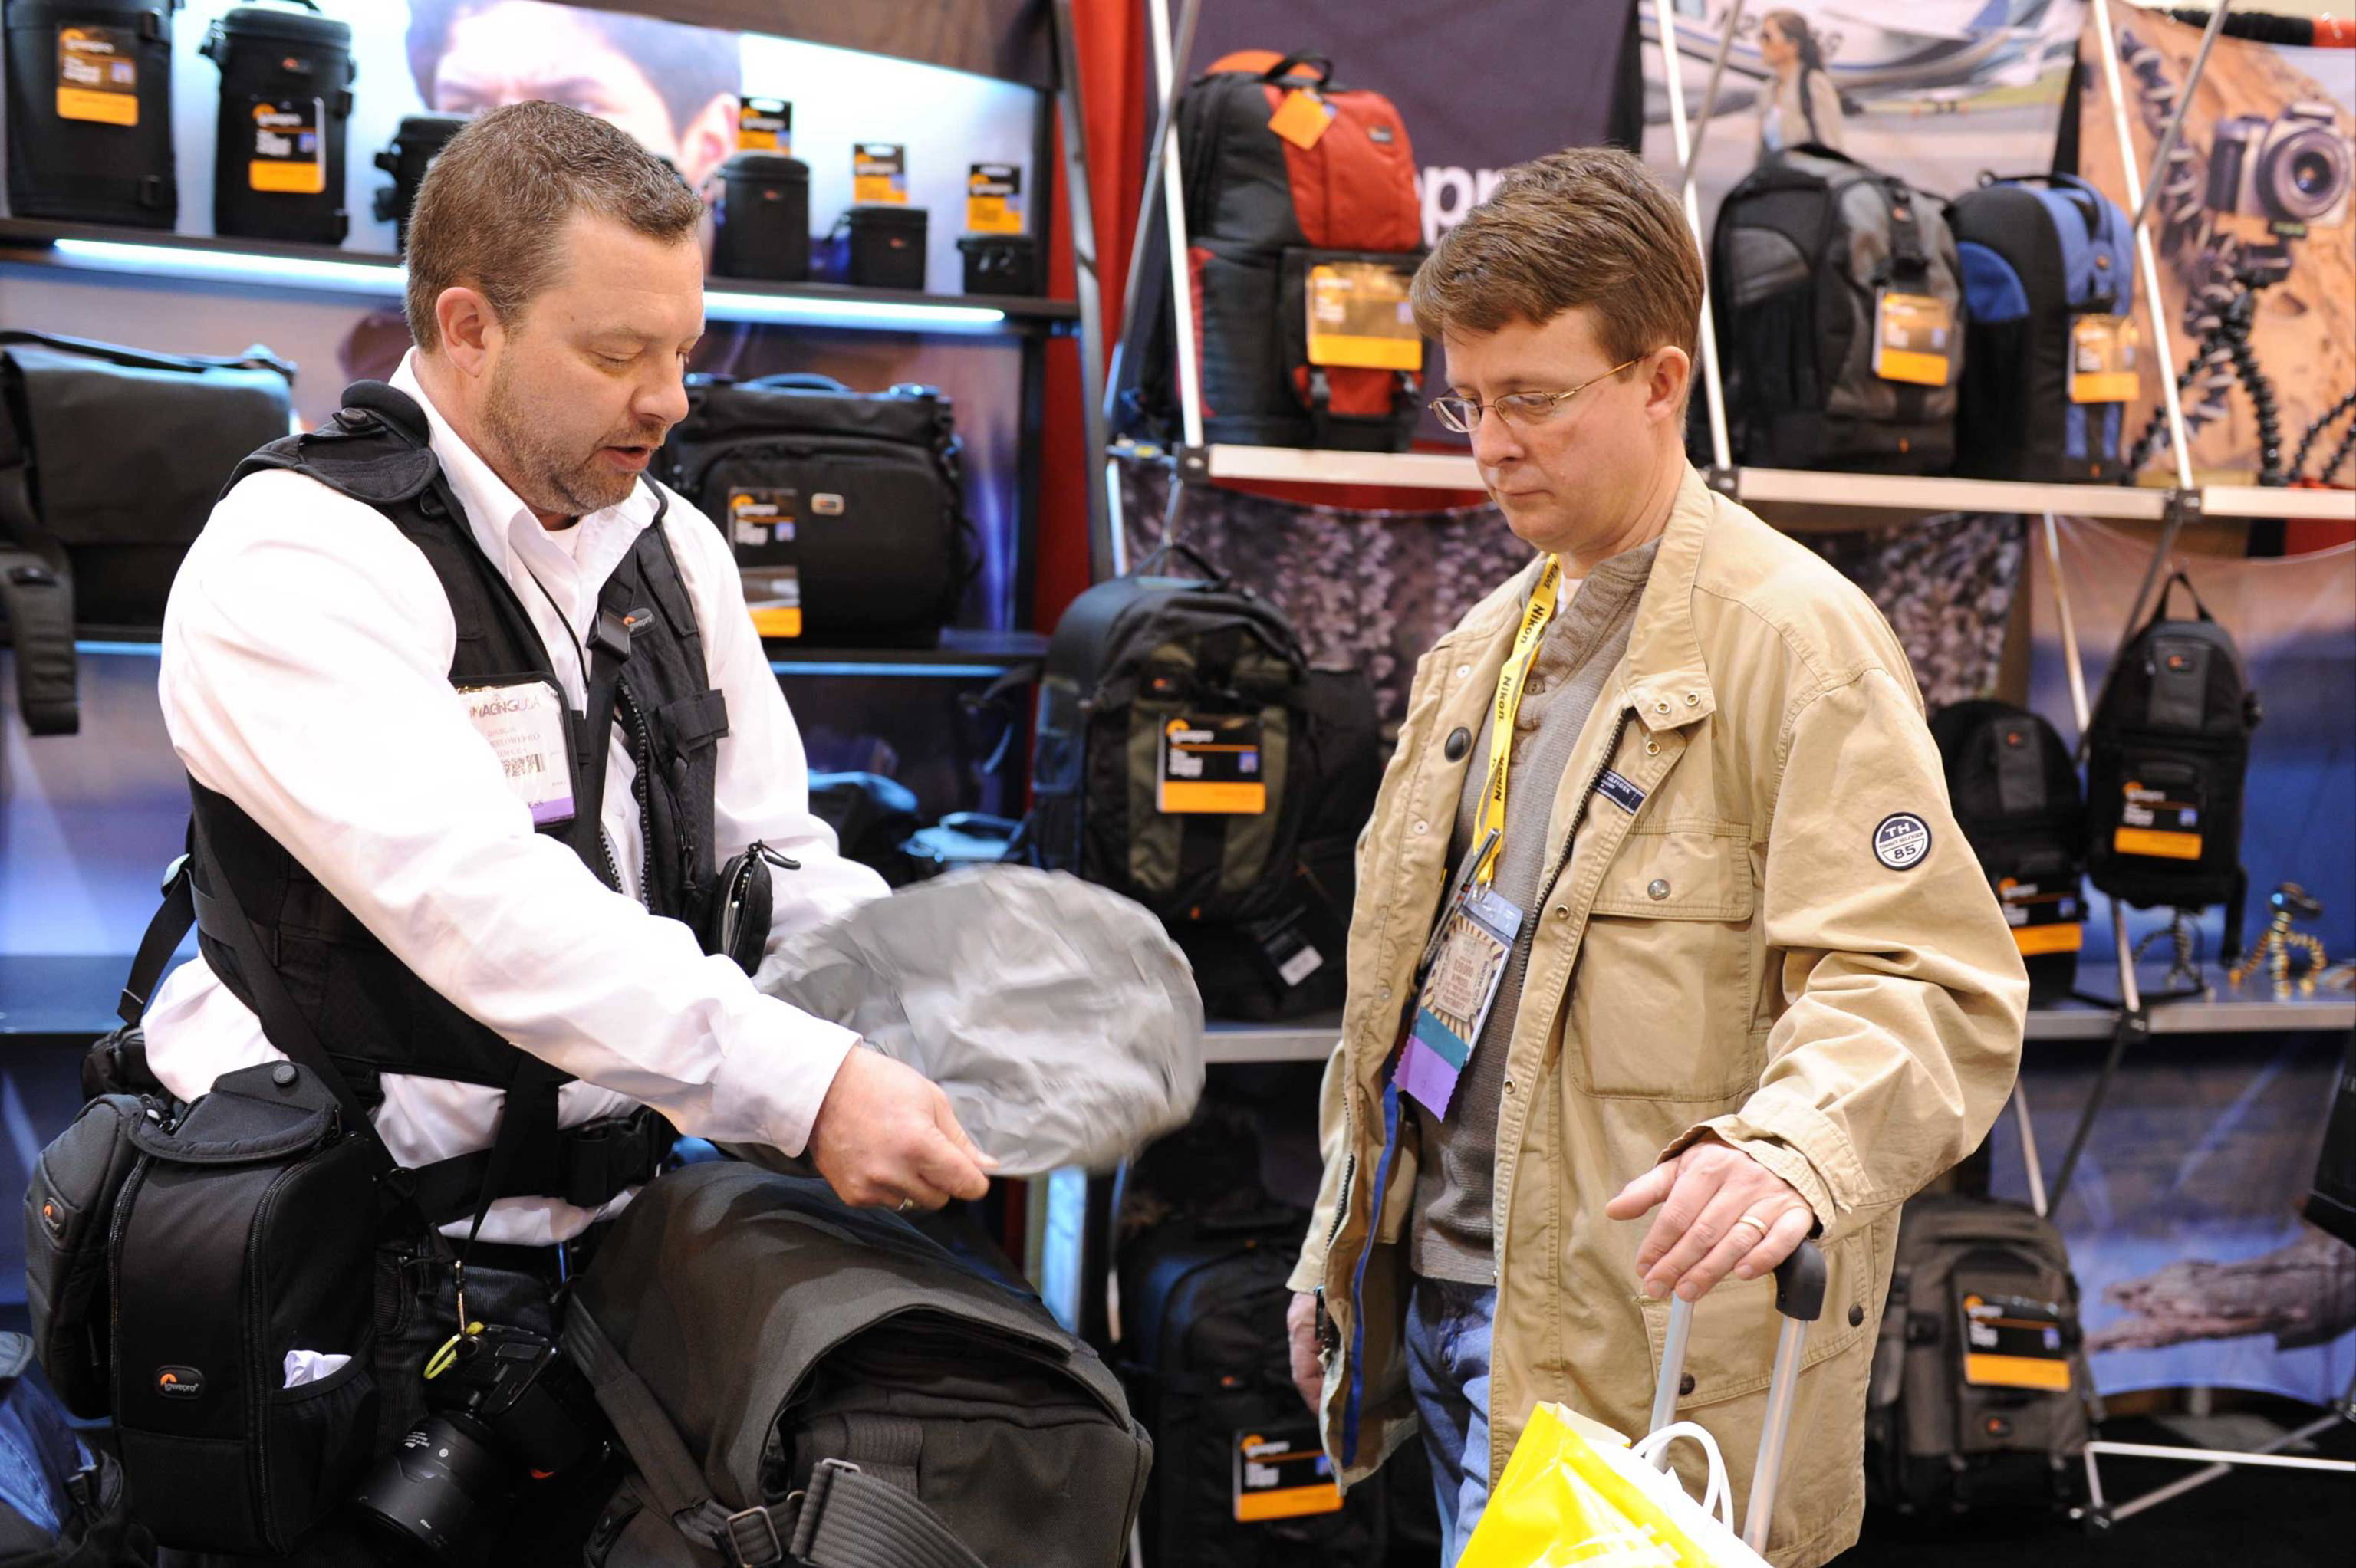 Lowepro at Imaging USA in NoLa